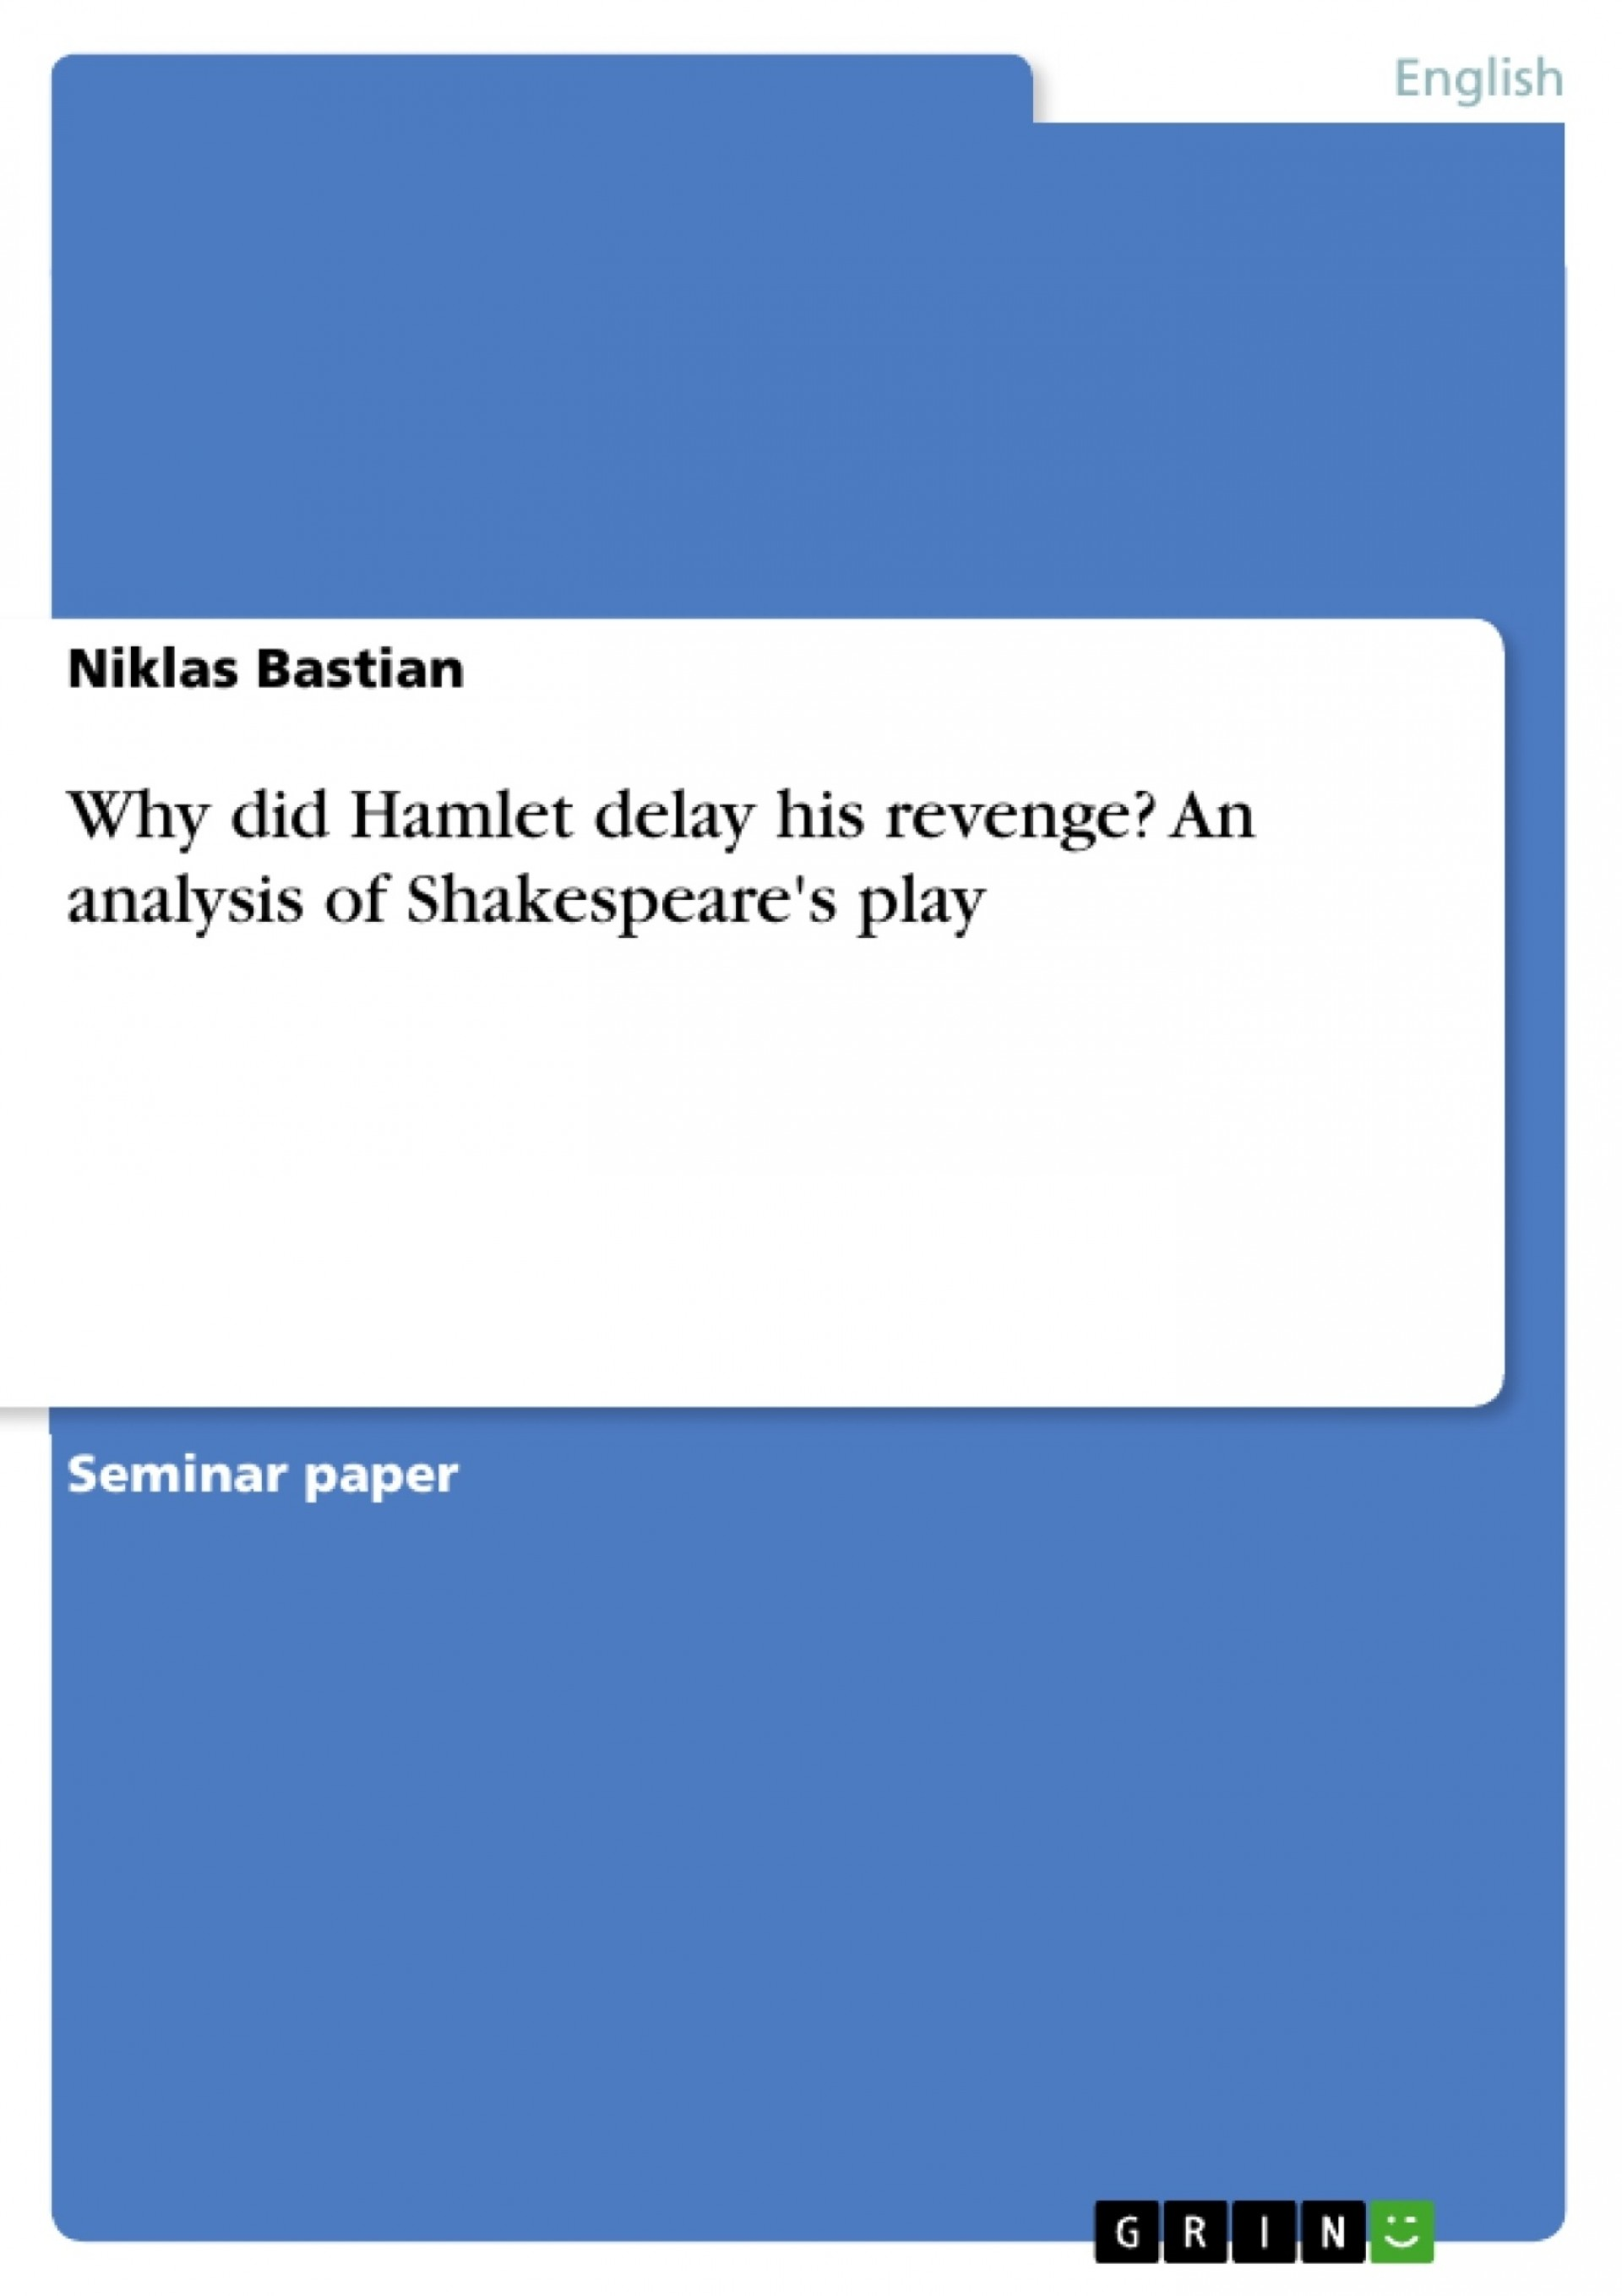 002 338818 0 Essay Example Hamlet Outstanding Delay Why Did Revenge 1920